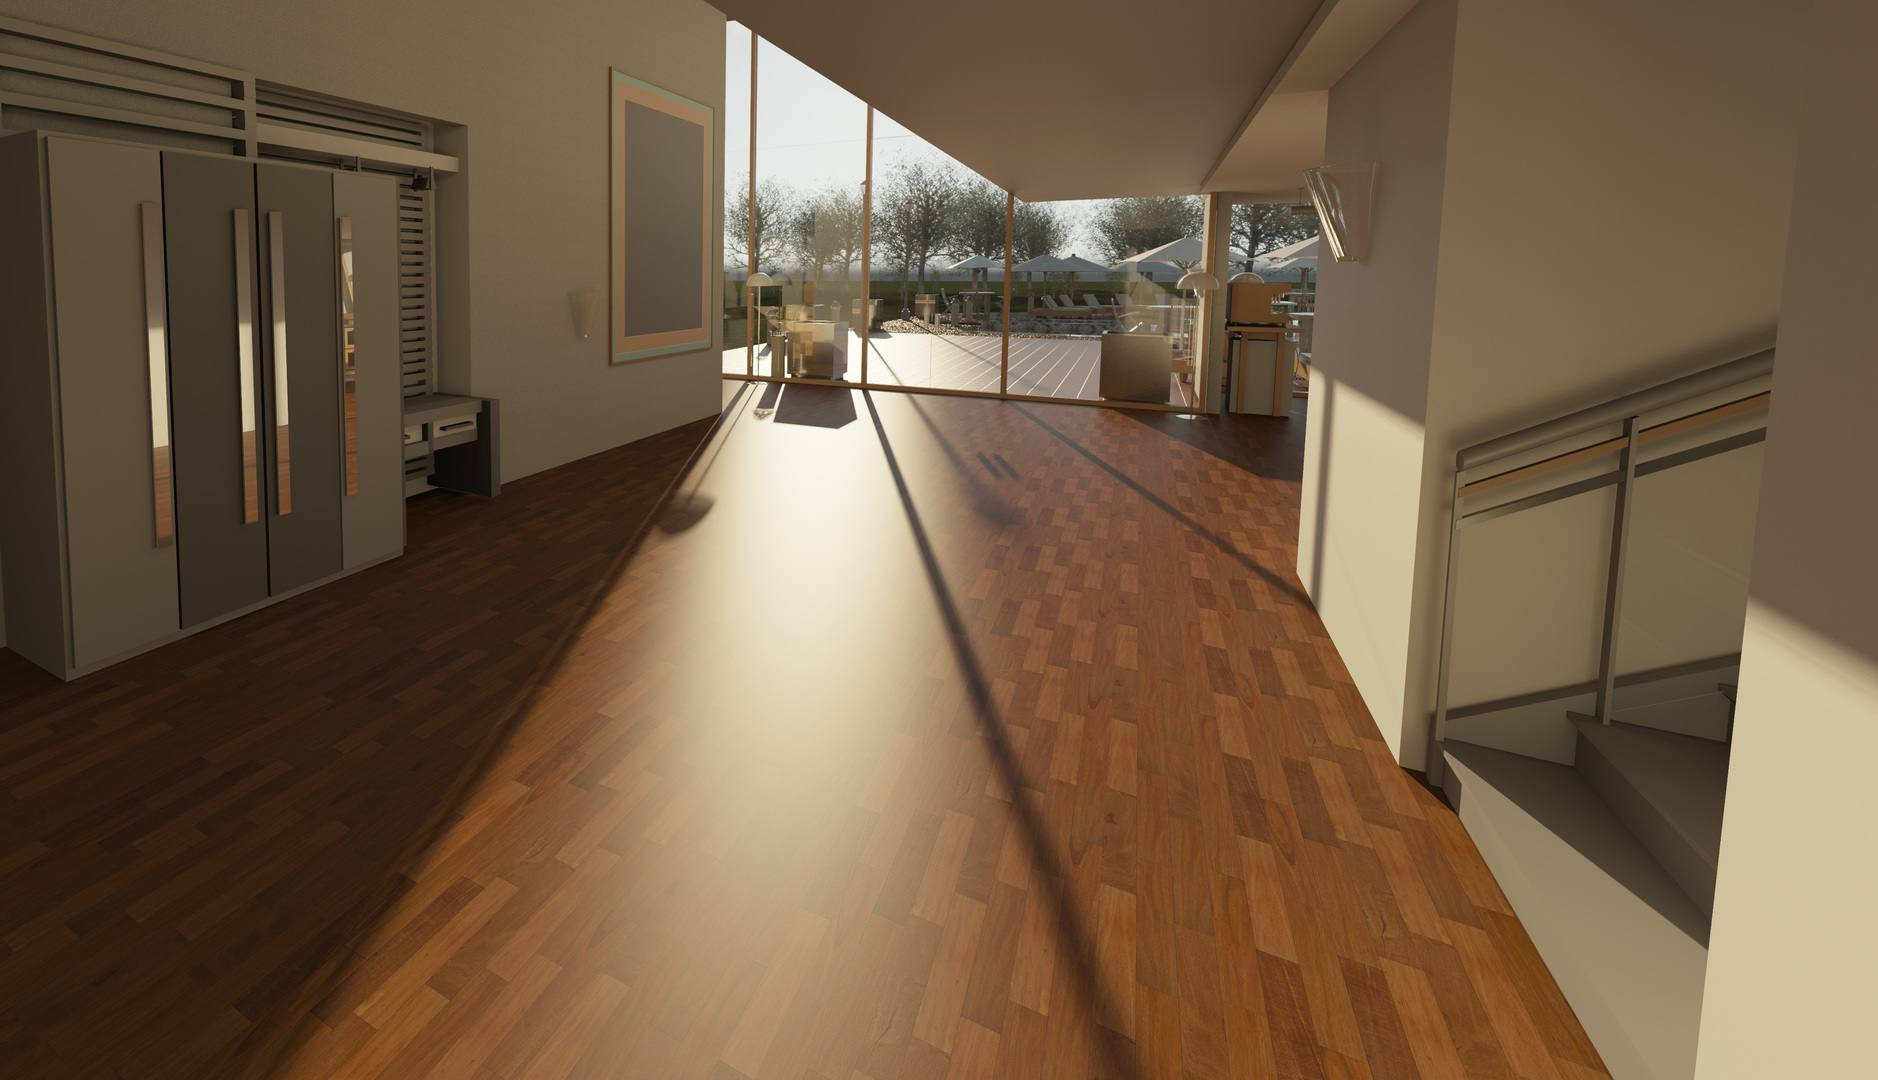 best hardwood floor options of common flooring types currently used in renovation and building within architecture wood house floor interior window 917178 pxhere com 5ba27a2cc9e77c00503b27b9